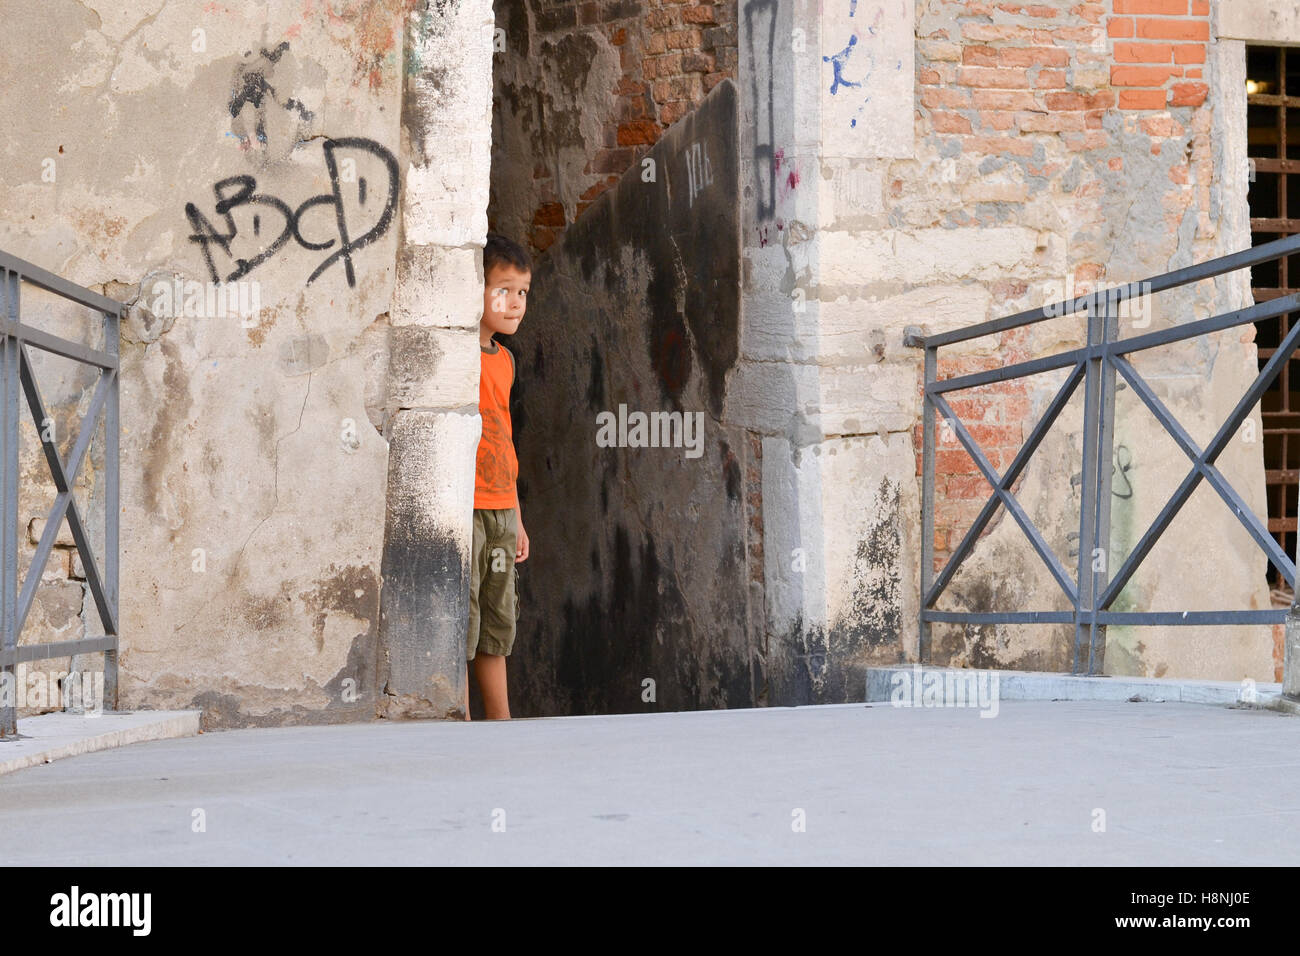 A Boy playing Hide and Seek in the streets of Venice, Italy. - Stock Image